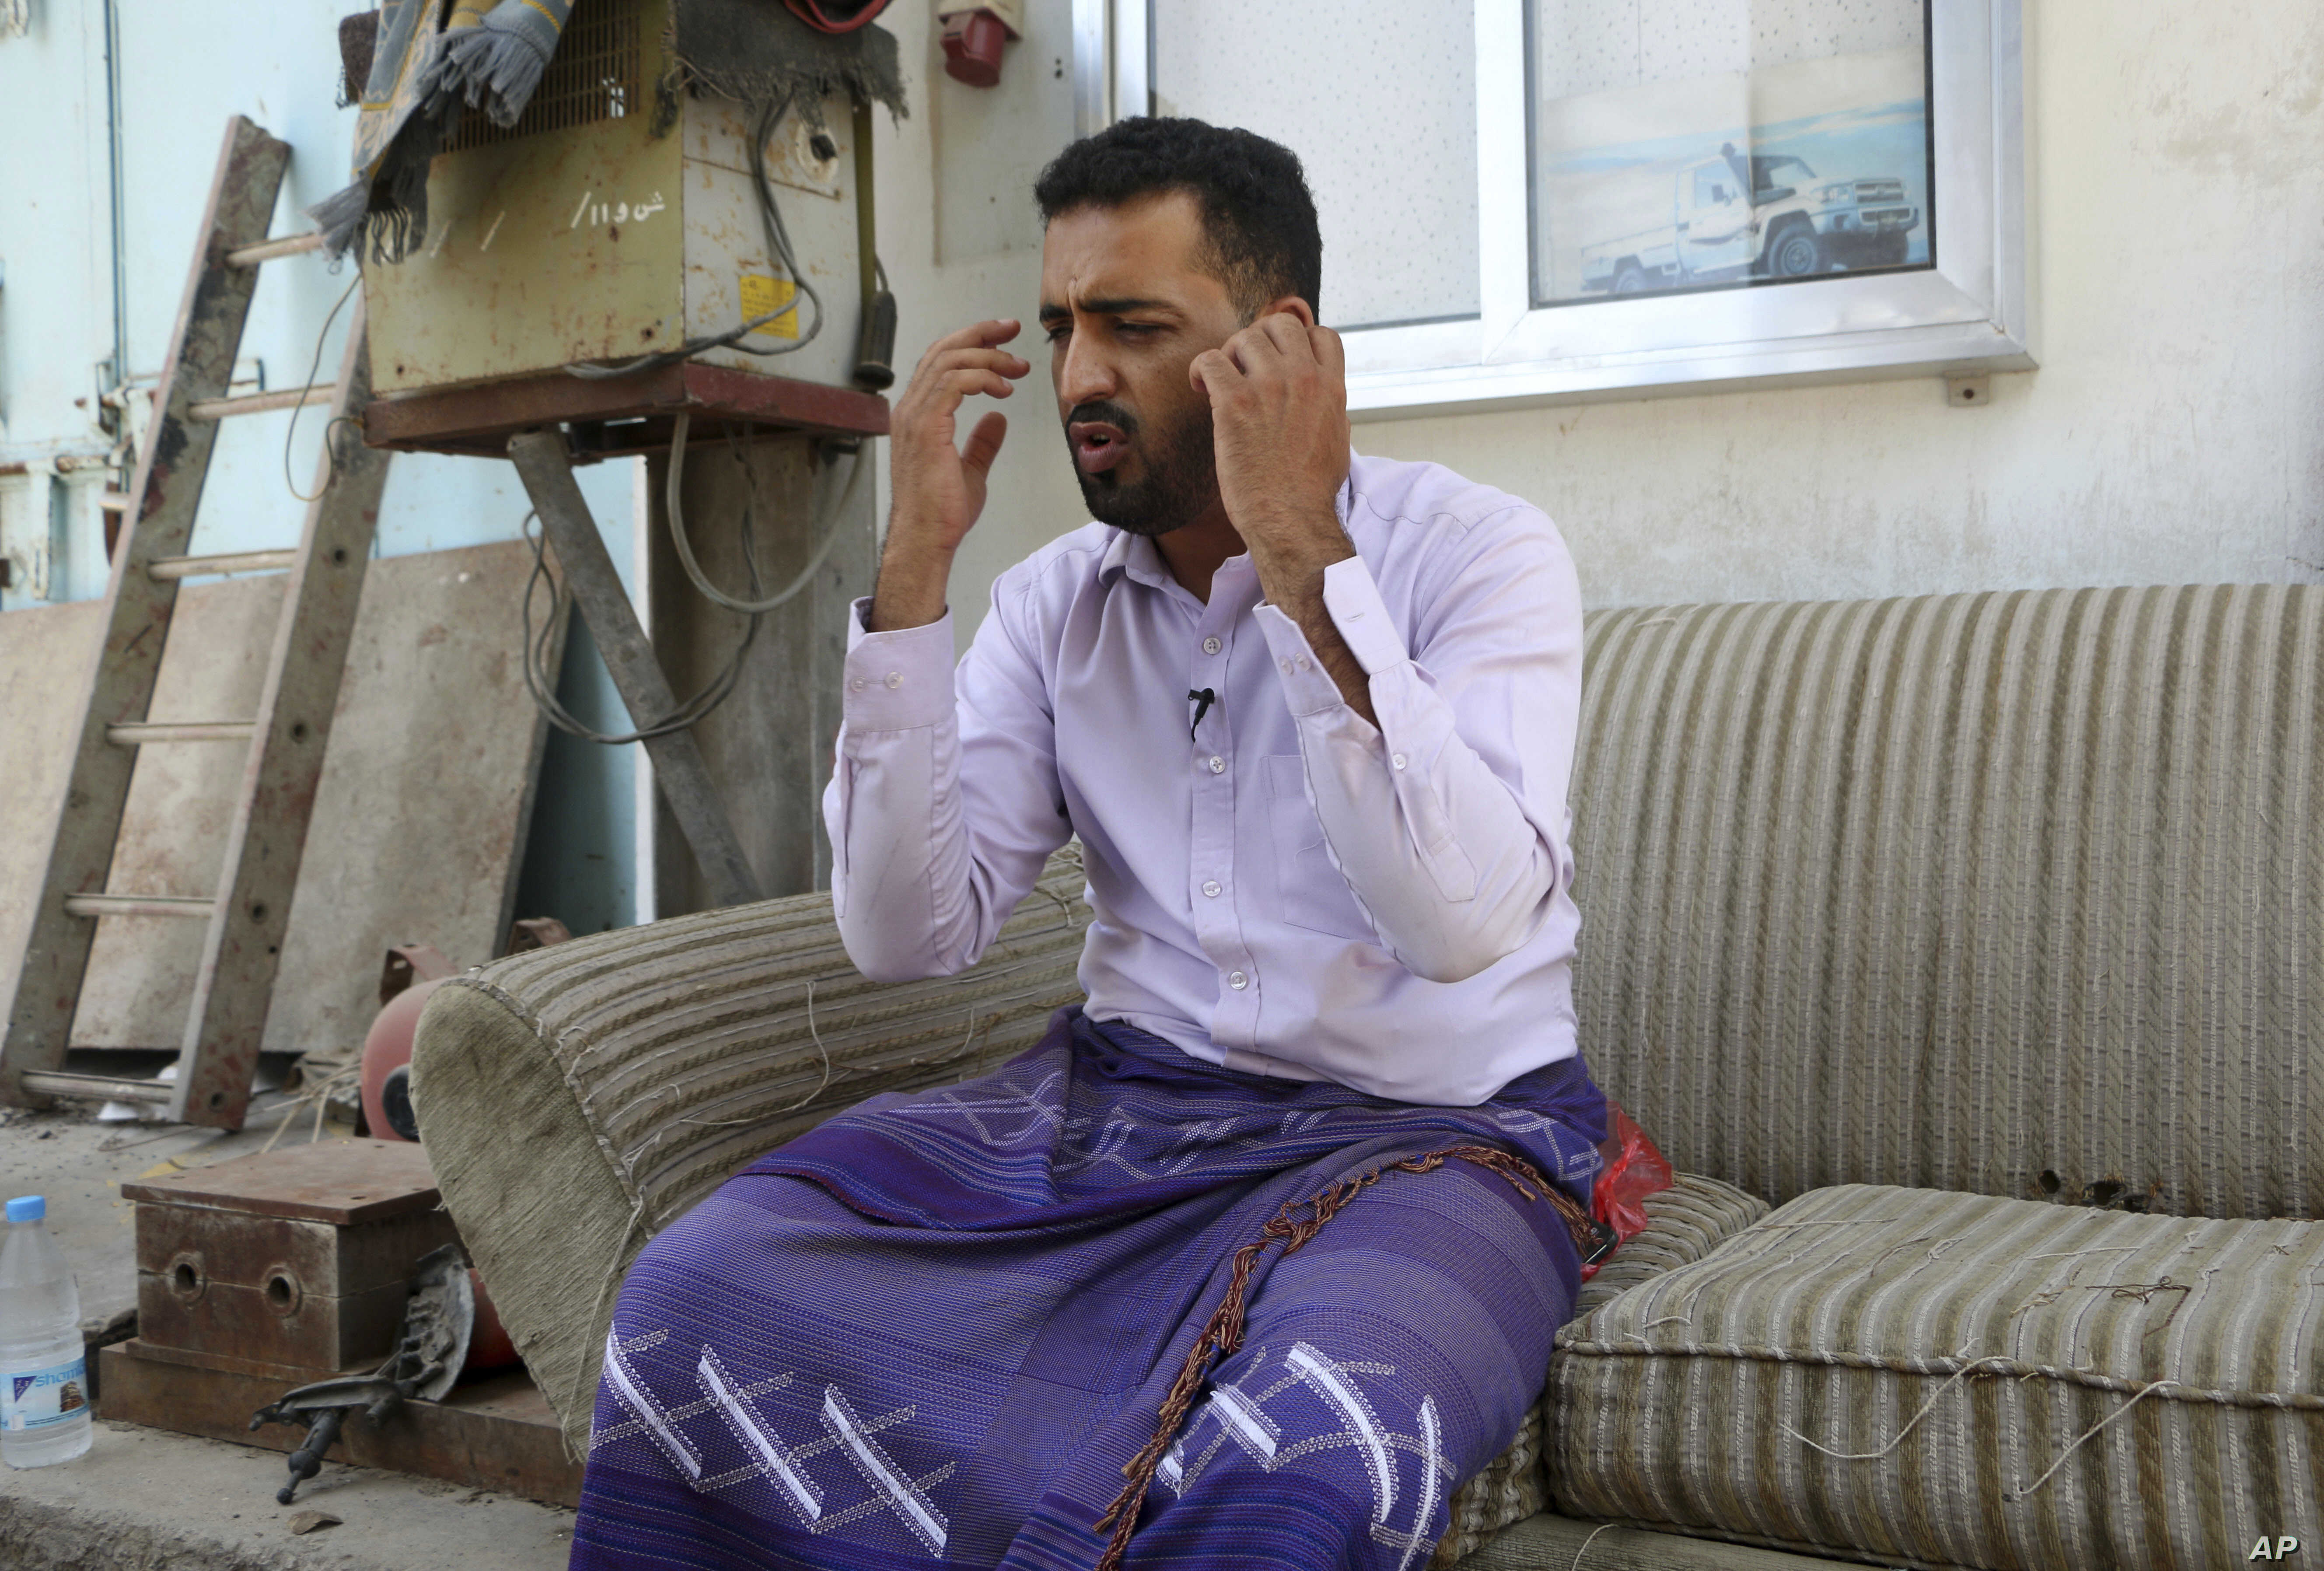 Yemeni businessman Ali Awad Habib recounts the torment he suffered in prison, where he said he was beaten with wires and wooden clubs and given electrical shocks, in this May 8, 2017, photo in Aden, Yemen. Habib was detained for weeks after Emirati-b...